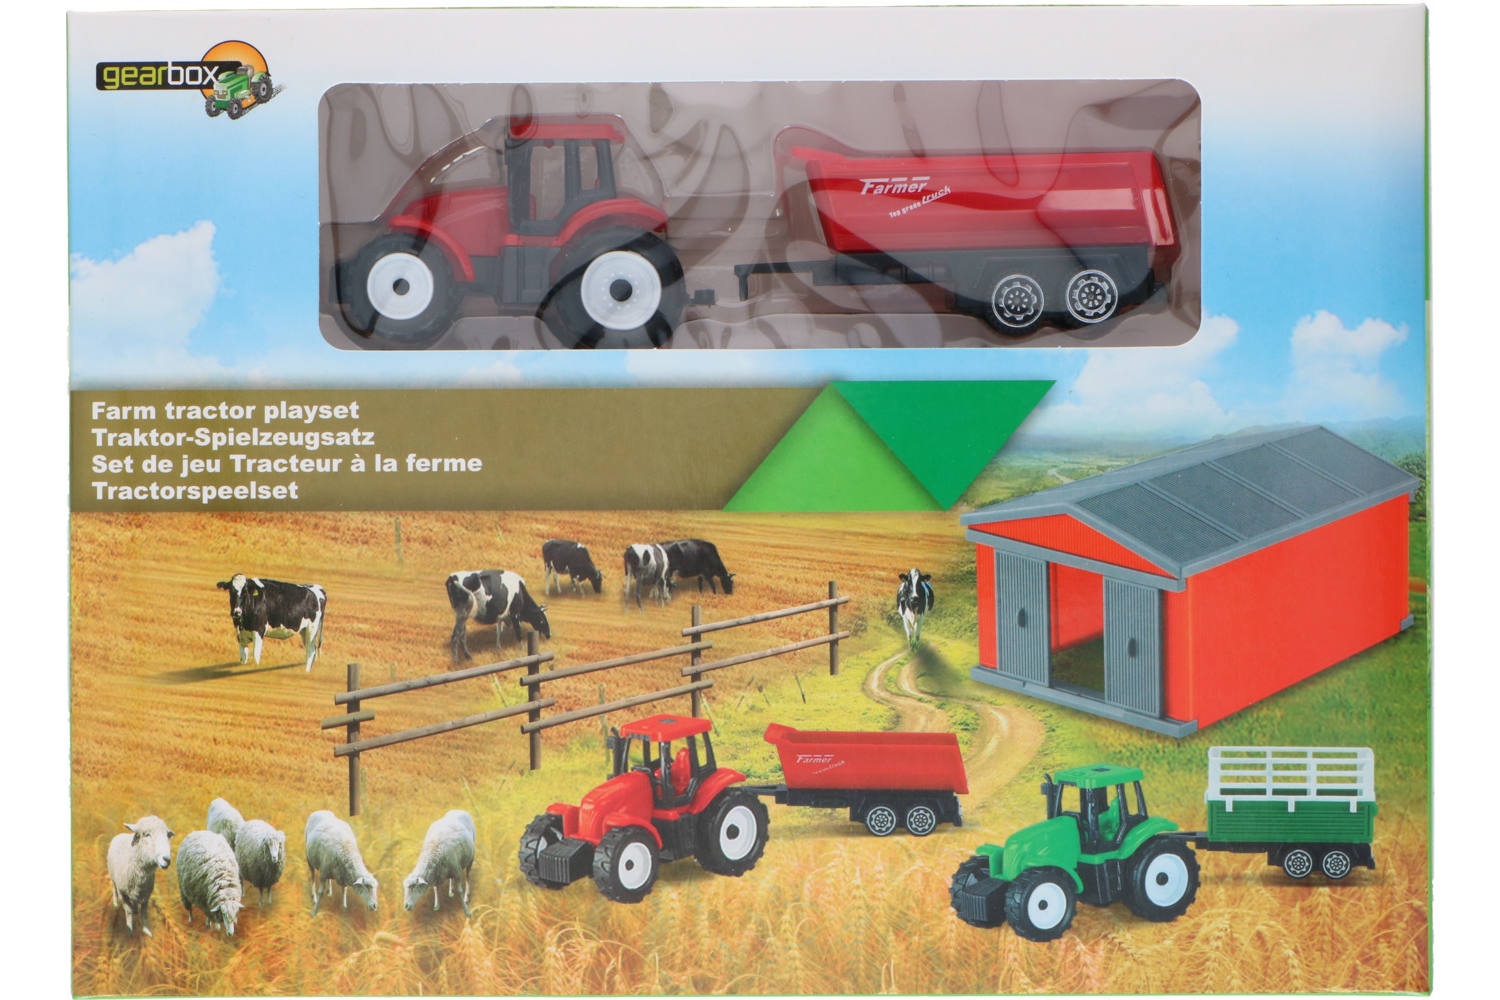 Farm playset, Gearbox, 2 assorted 2